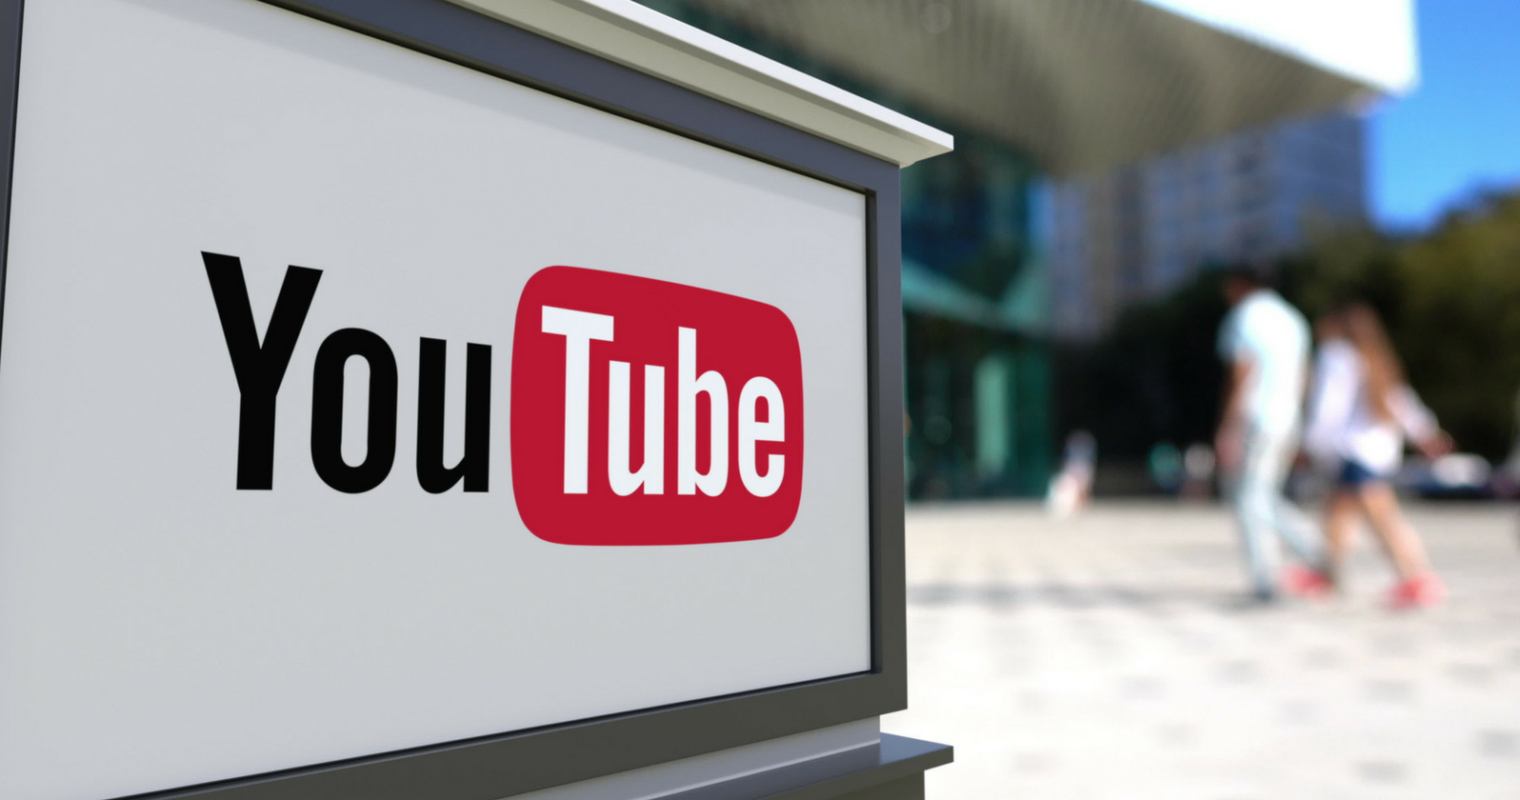 YouTube Allows Live Streaming for Channels with 1,000 Subscribers